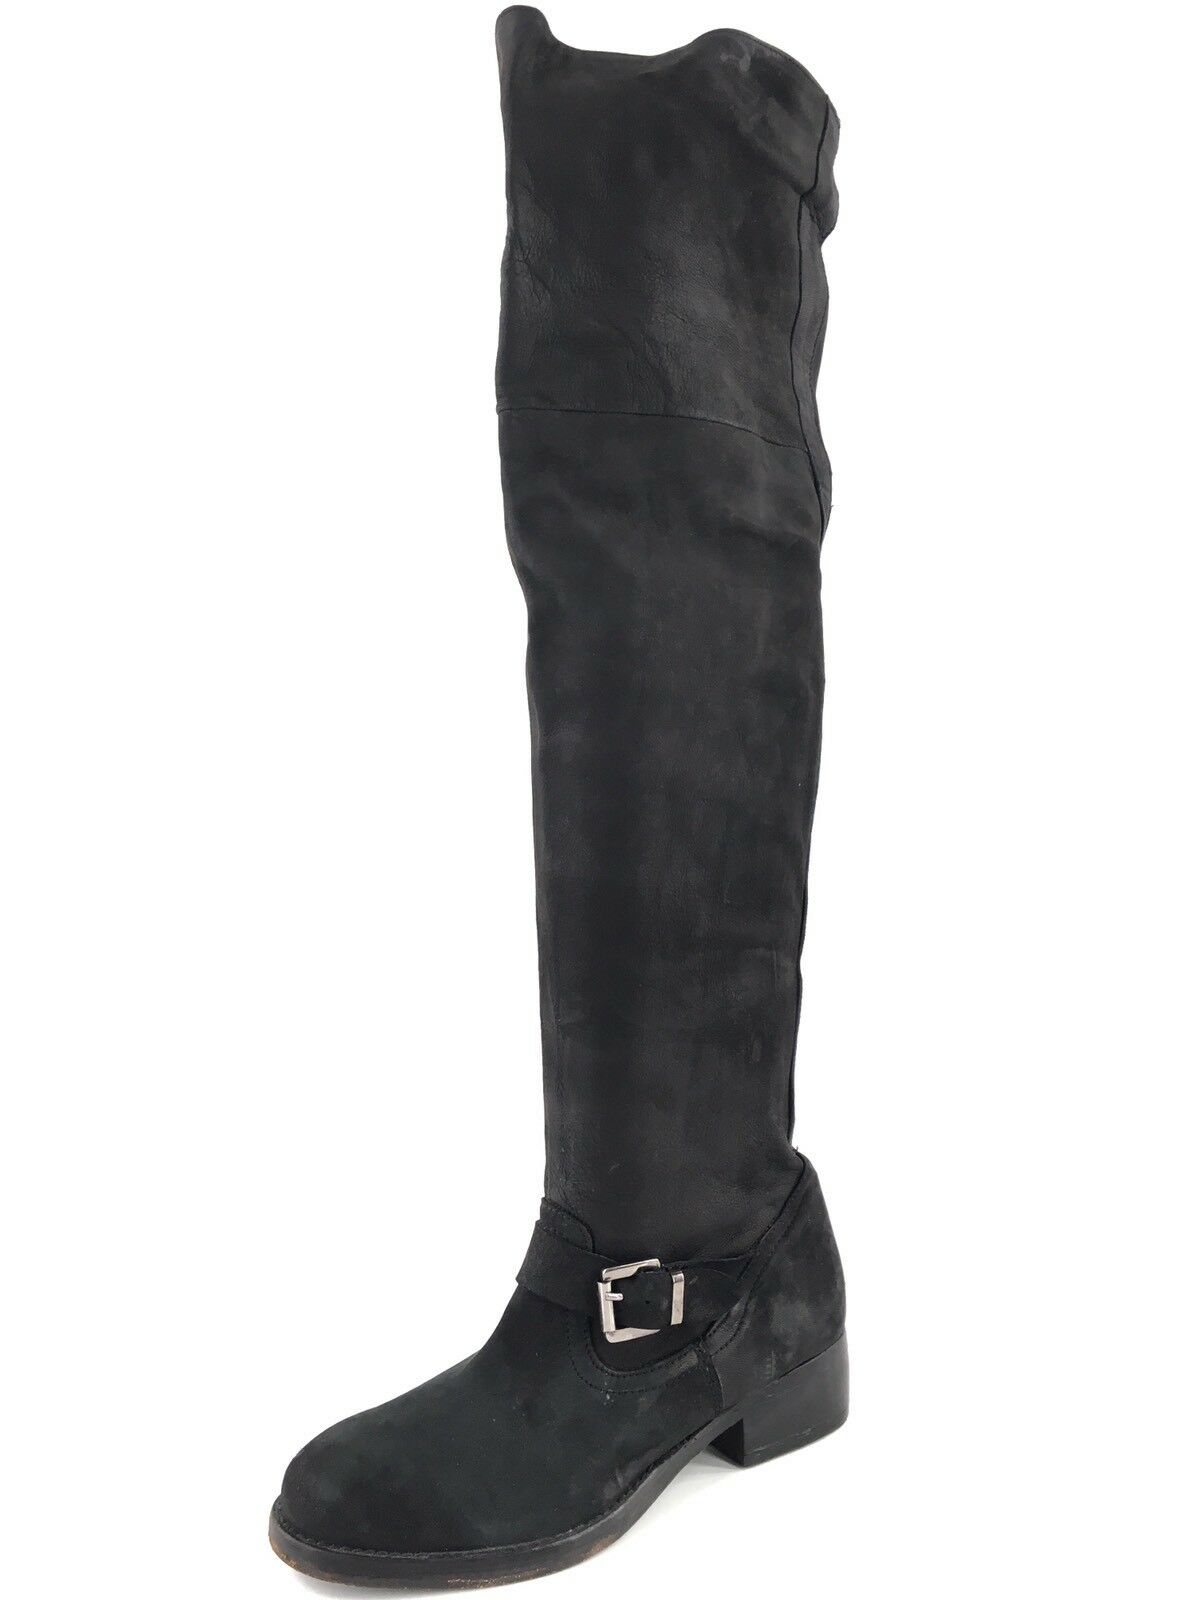 400 Kurt Geiger London Ash Black Leather Over the Knee Boots Womens Size 6.5 M